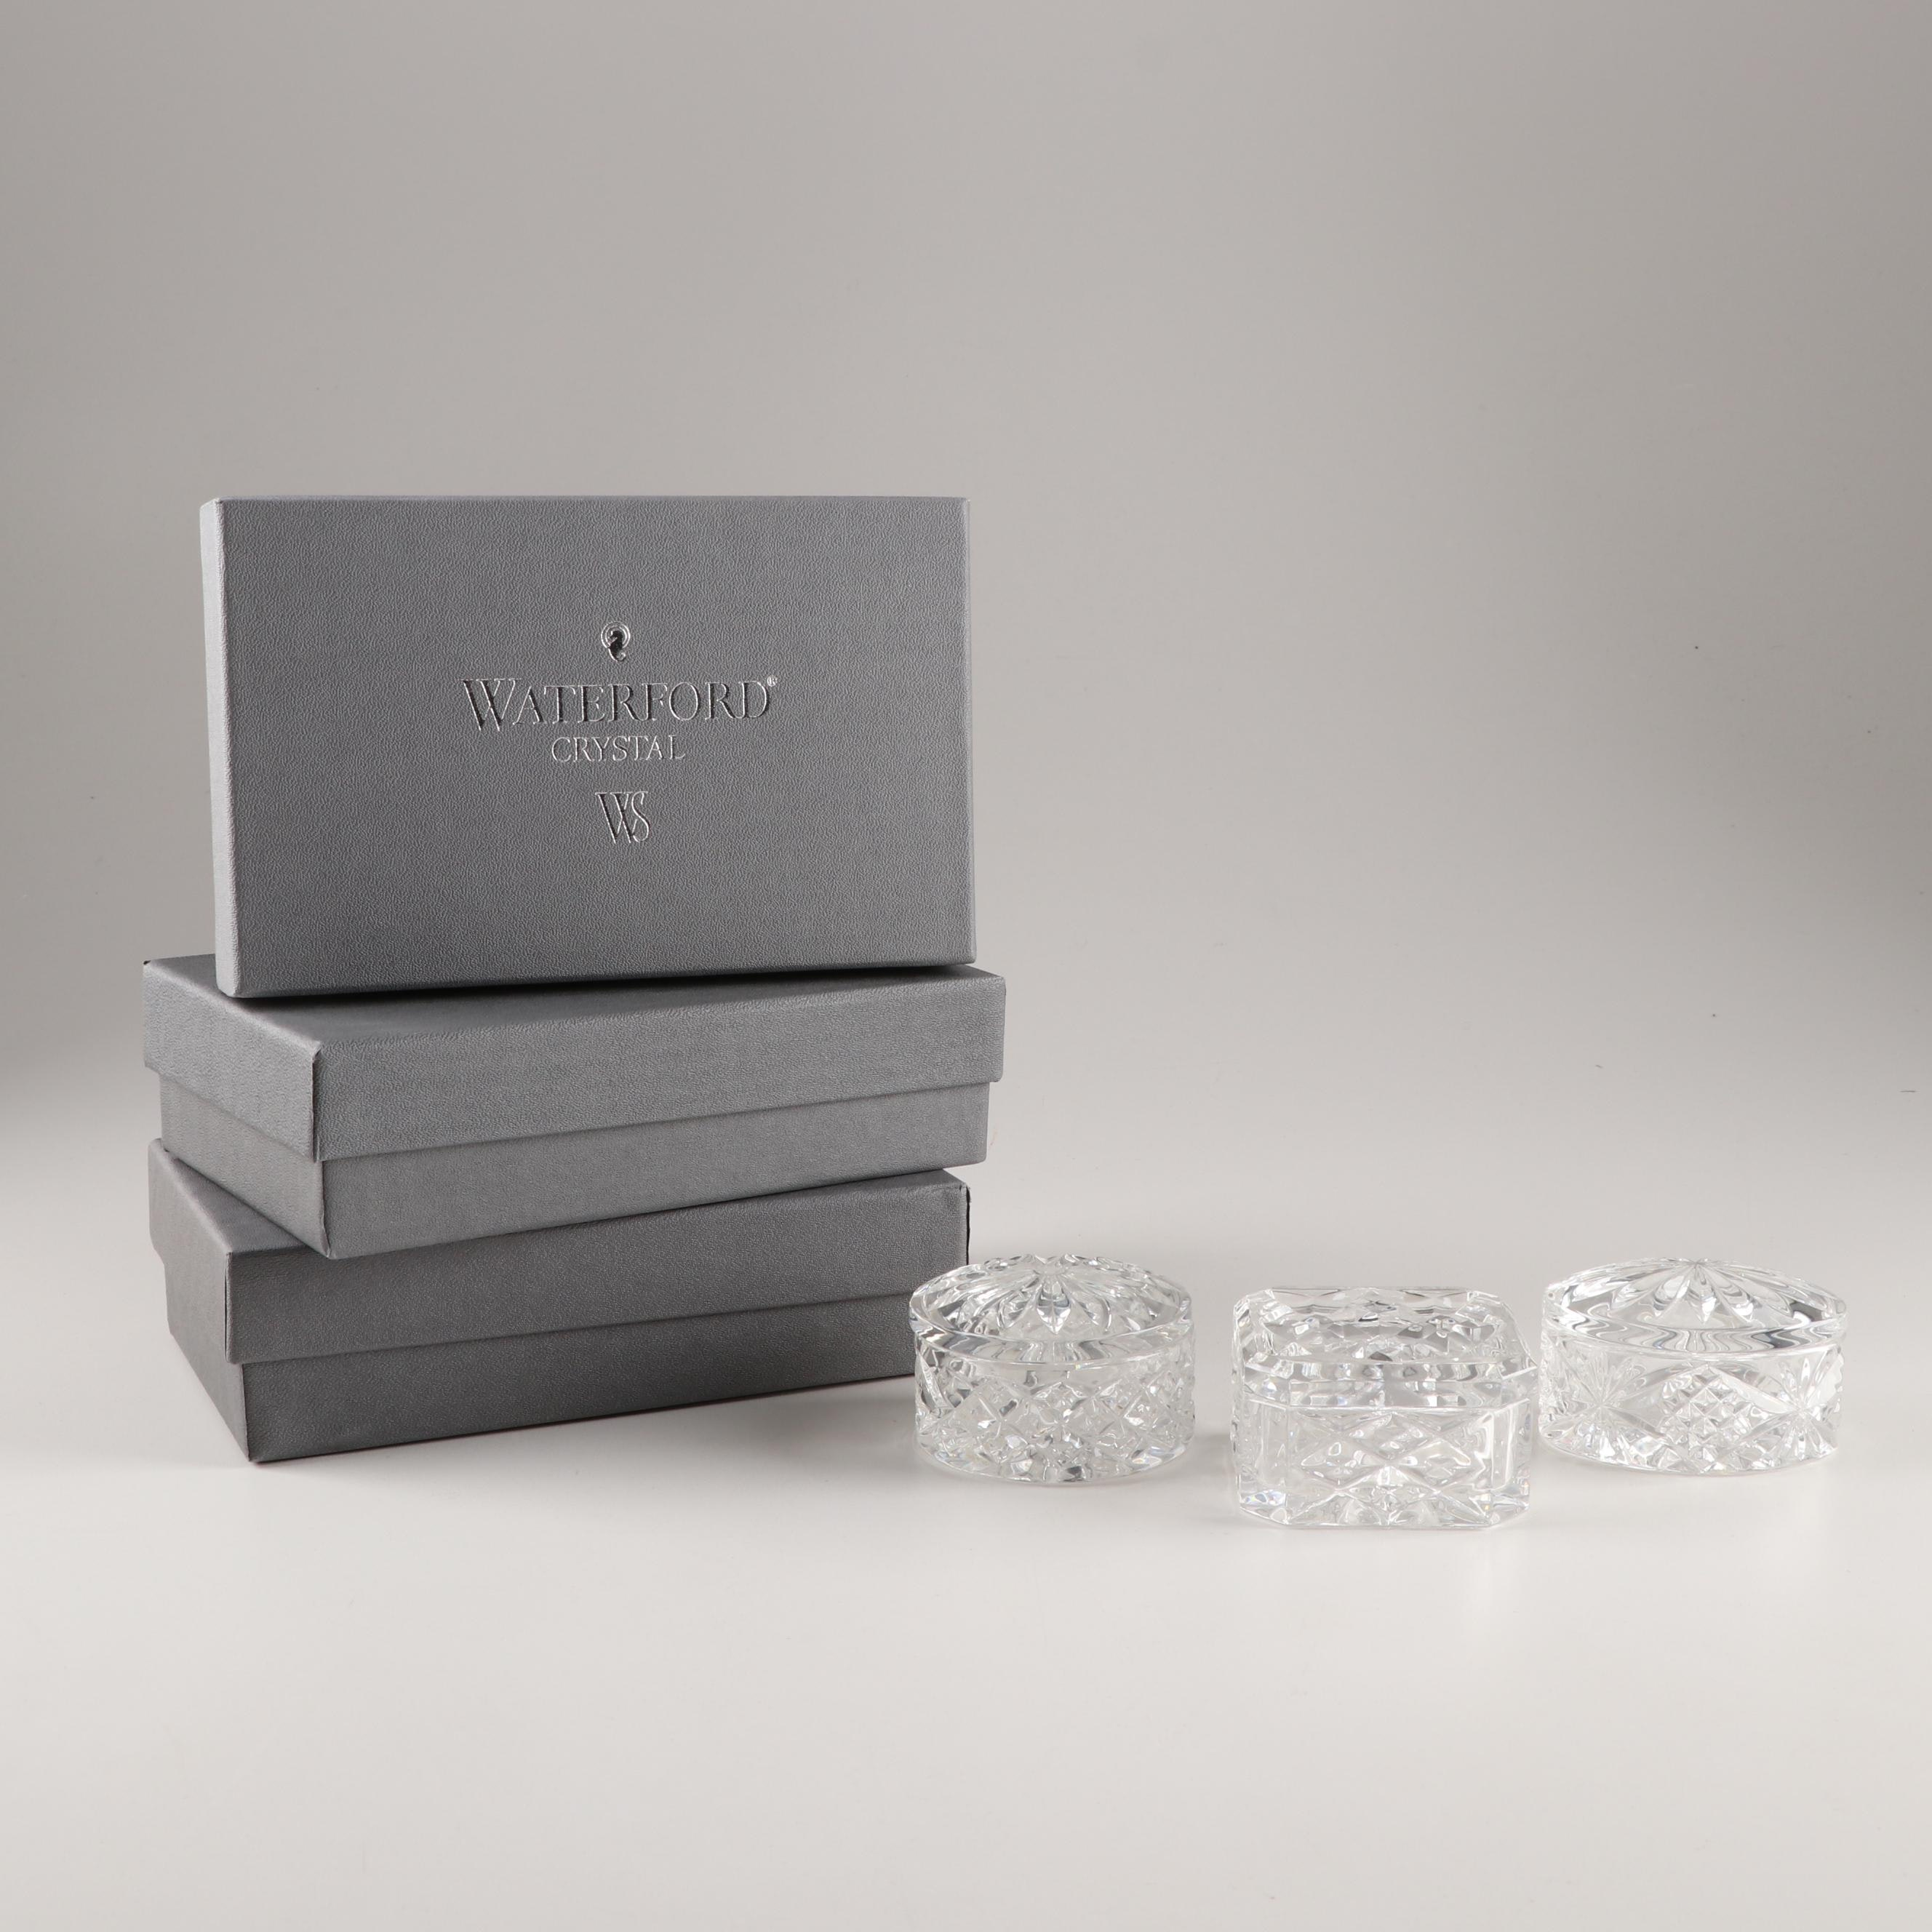 Waterford Crystal Trinket Boxes